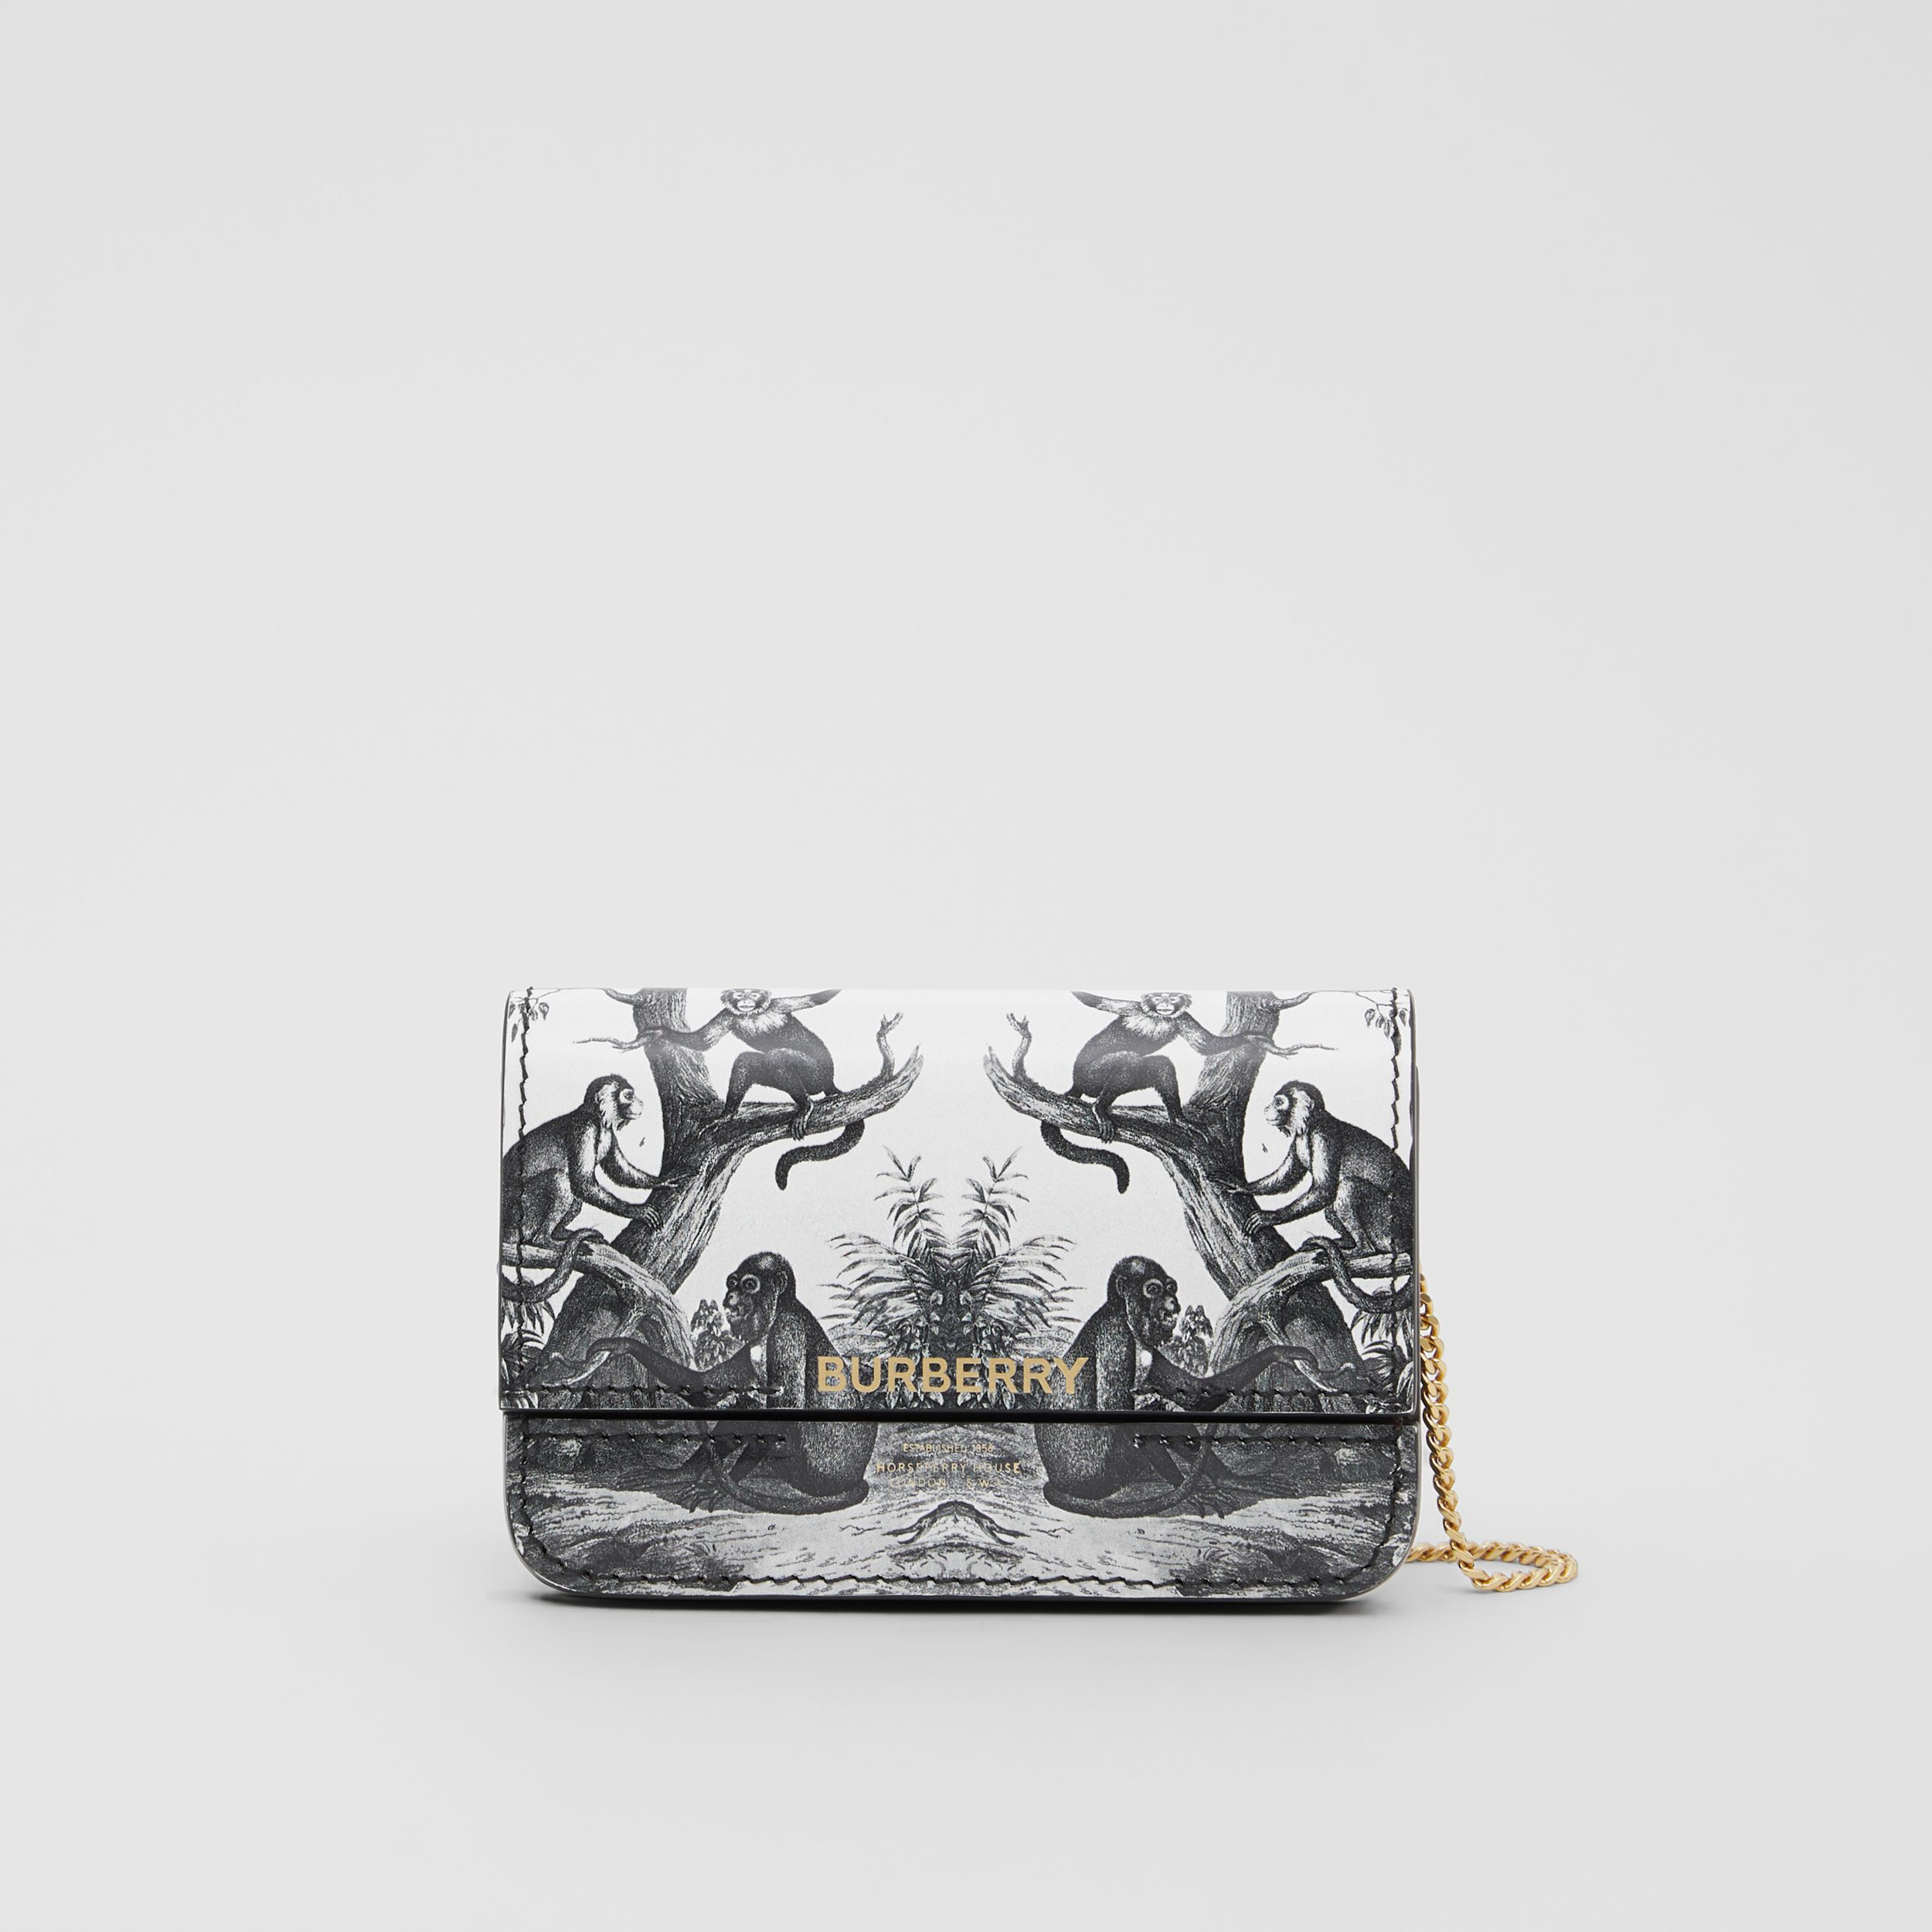 Monkey Print Leather Card Case with Chain Strap in Black/white | Burberry - 1